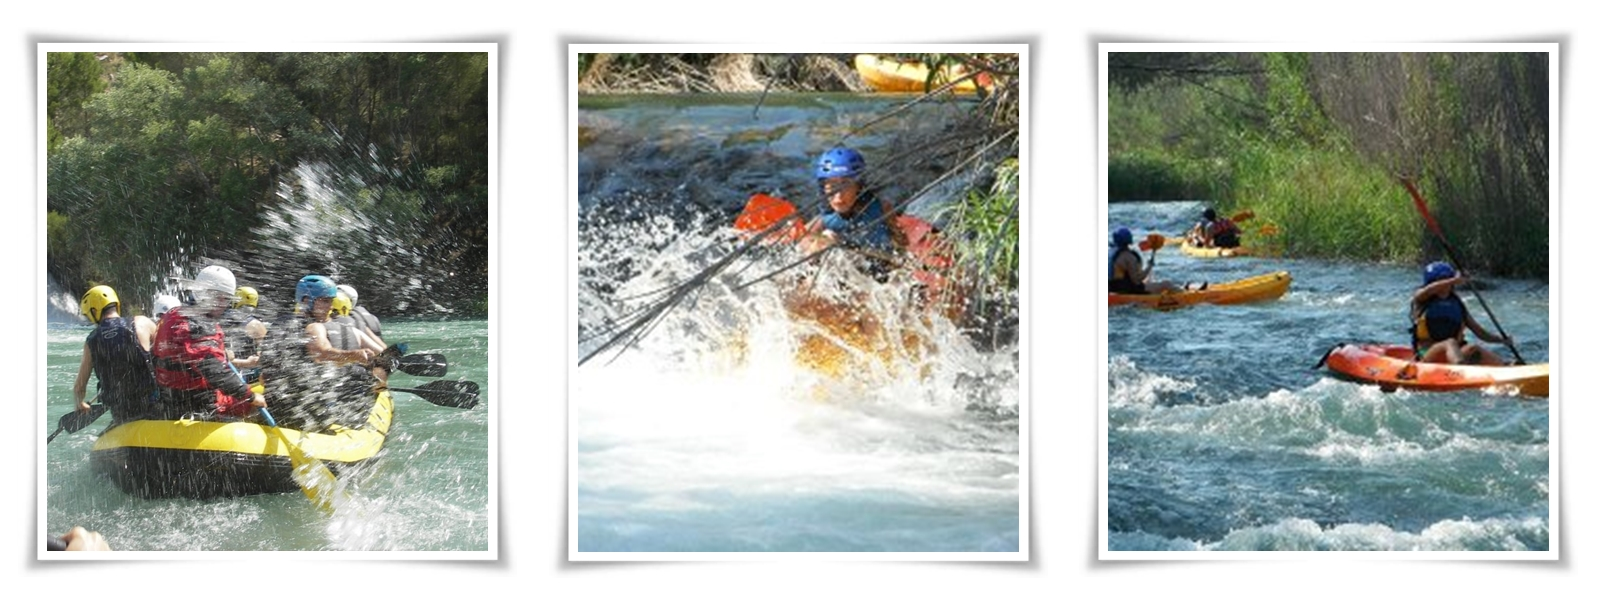 Descenso en canoas y rafting